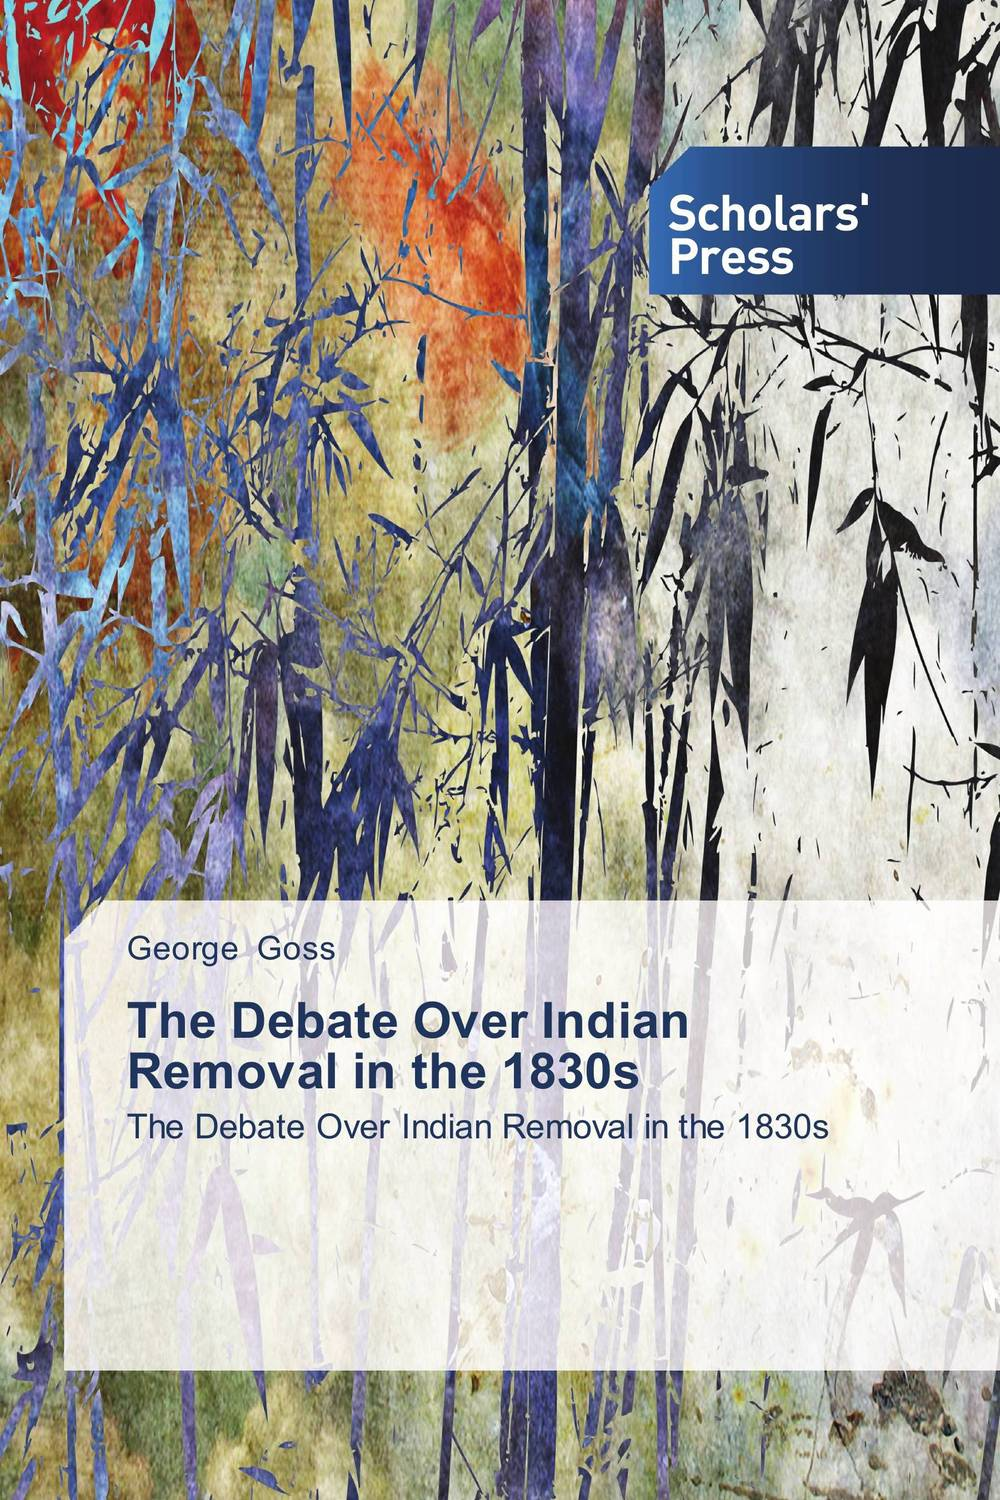 The Debate Over Indian Removal in the 1830s